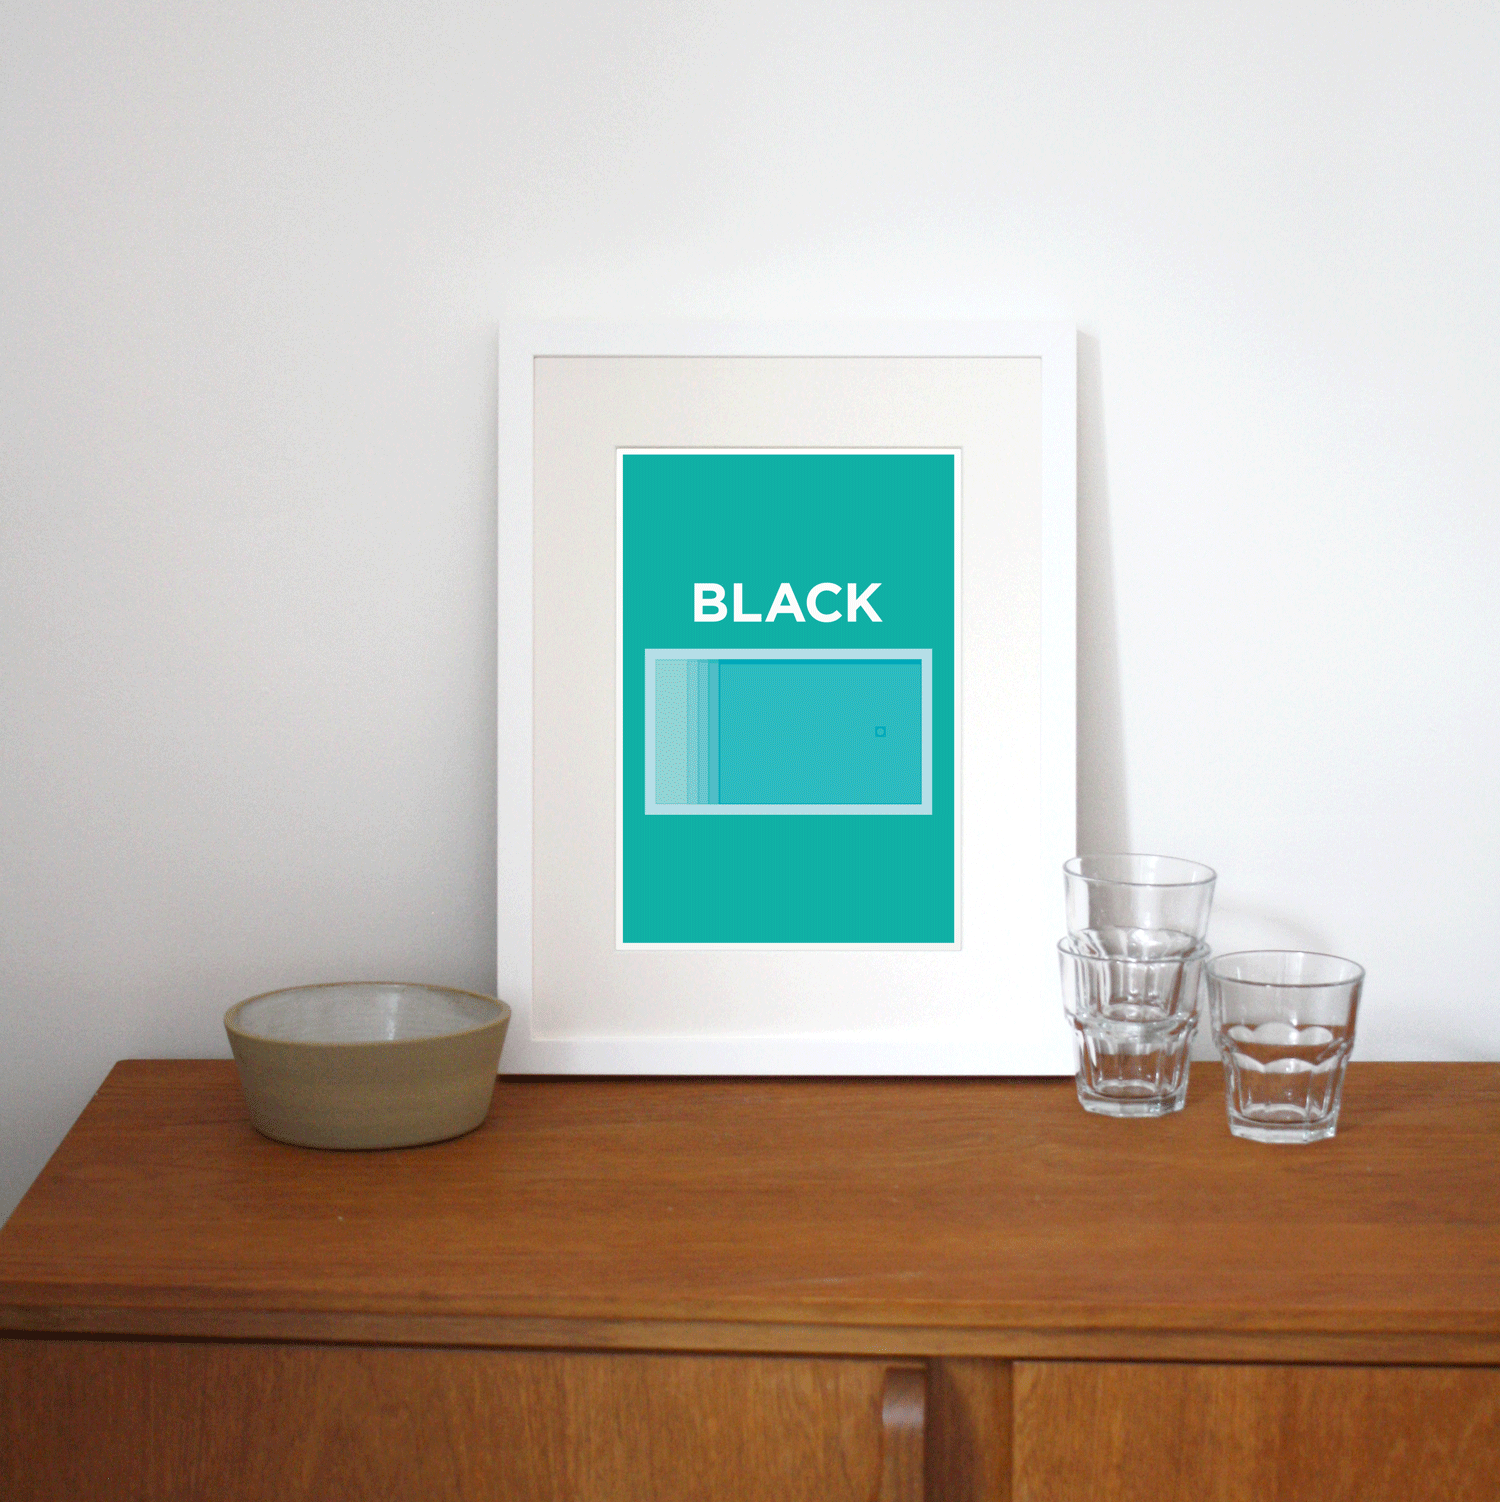 Place in Print Pate Blackpool Neighbourhood Pun Art Print Lifestyle